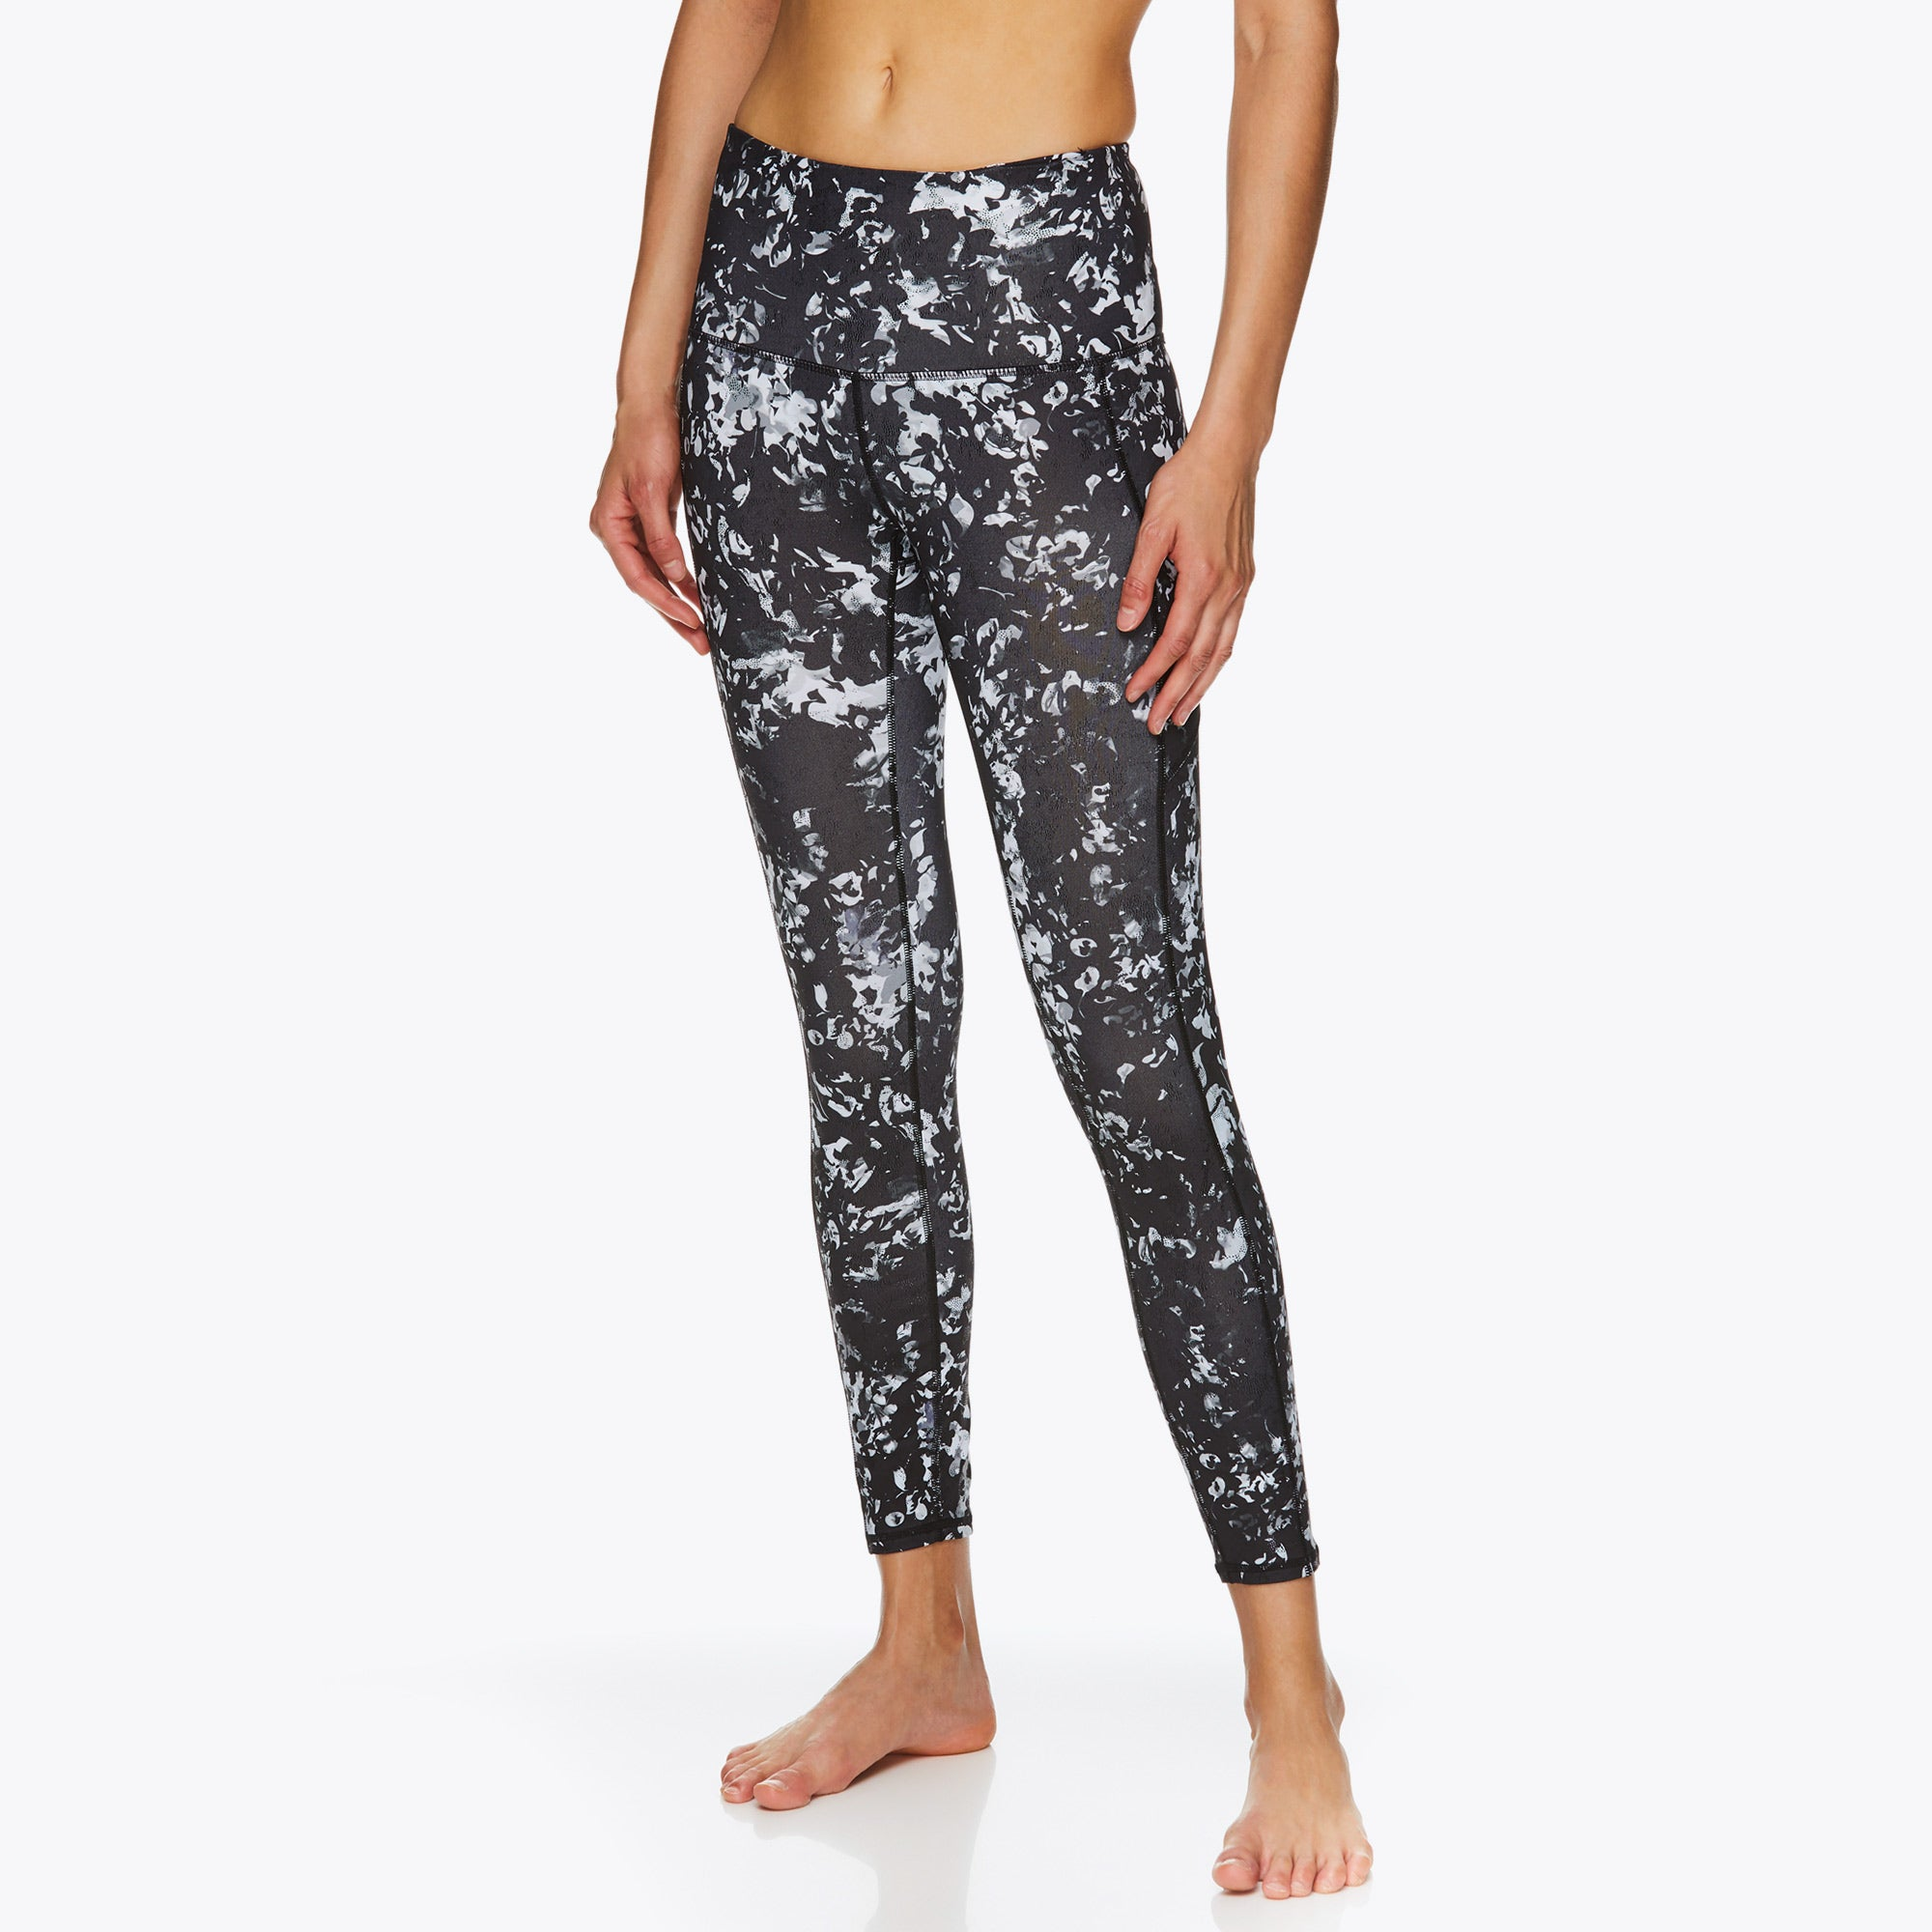 Image of Om Hi Rise Mercer Pocket Legging